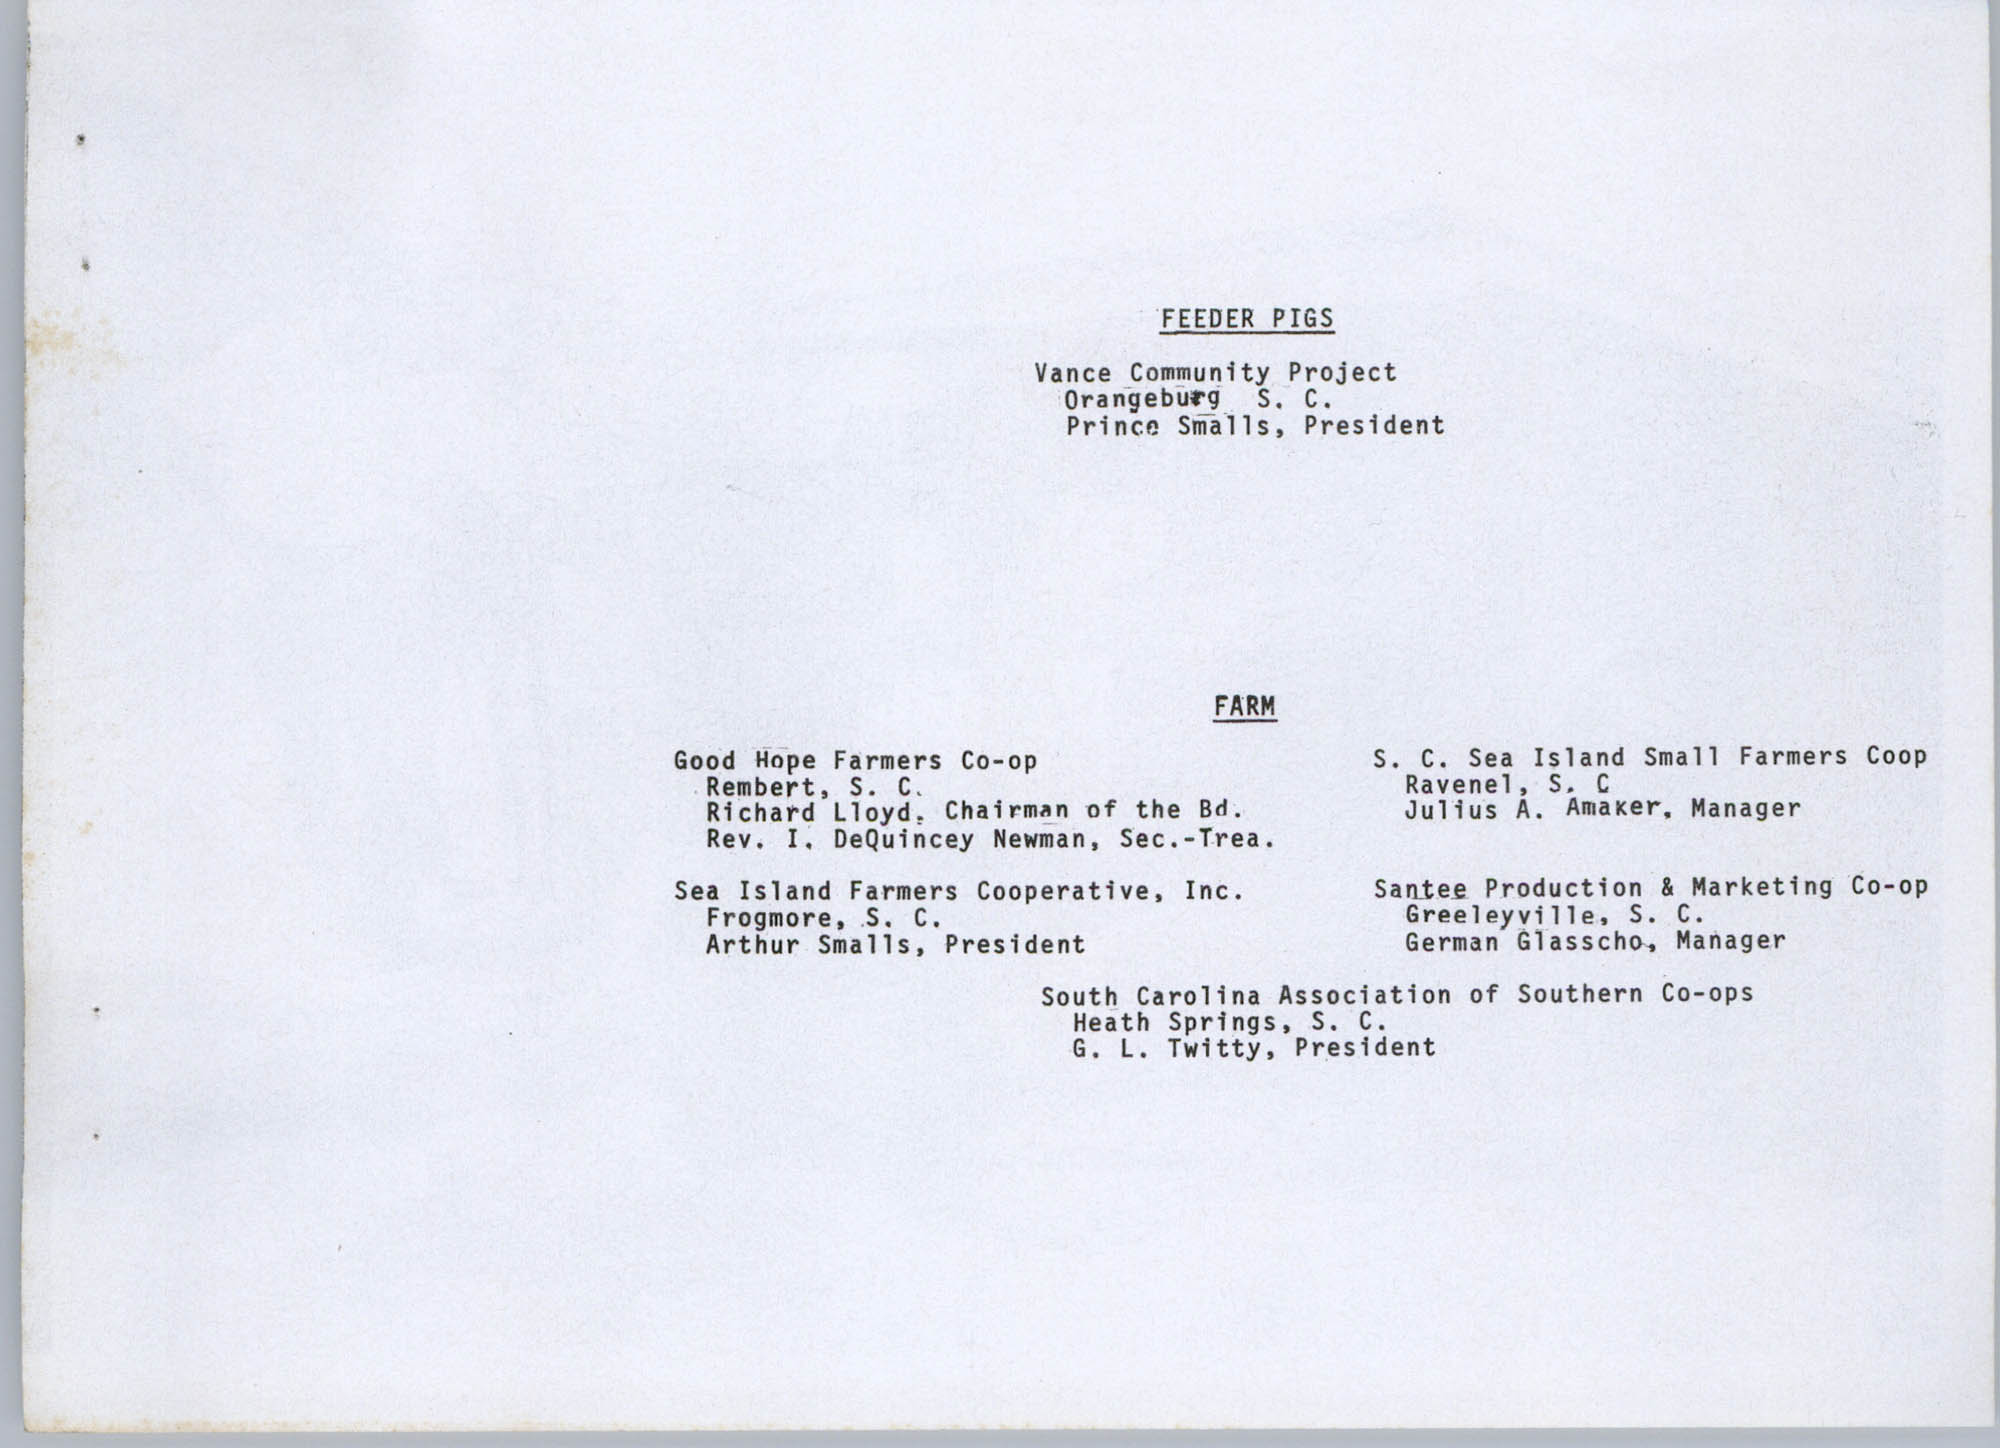 Coastal Plains Human Development Coordinating Council, 1974 Annual Report, Page 9